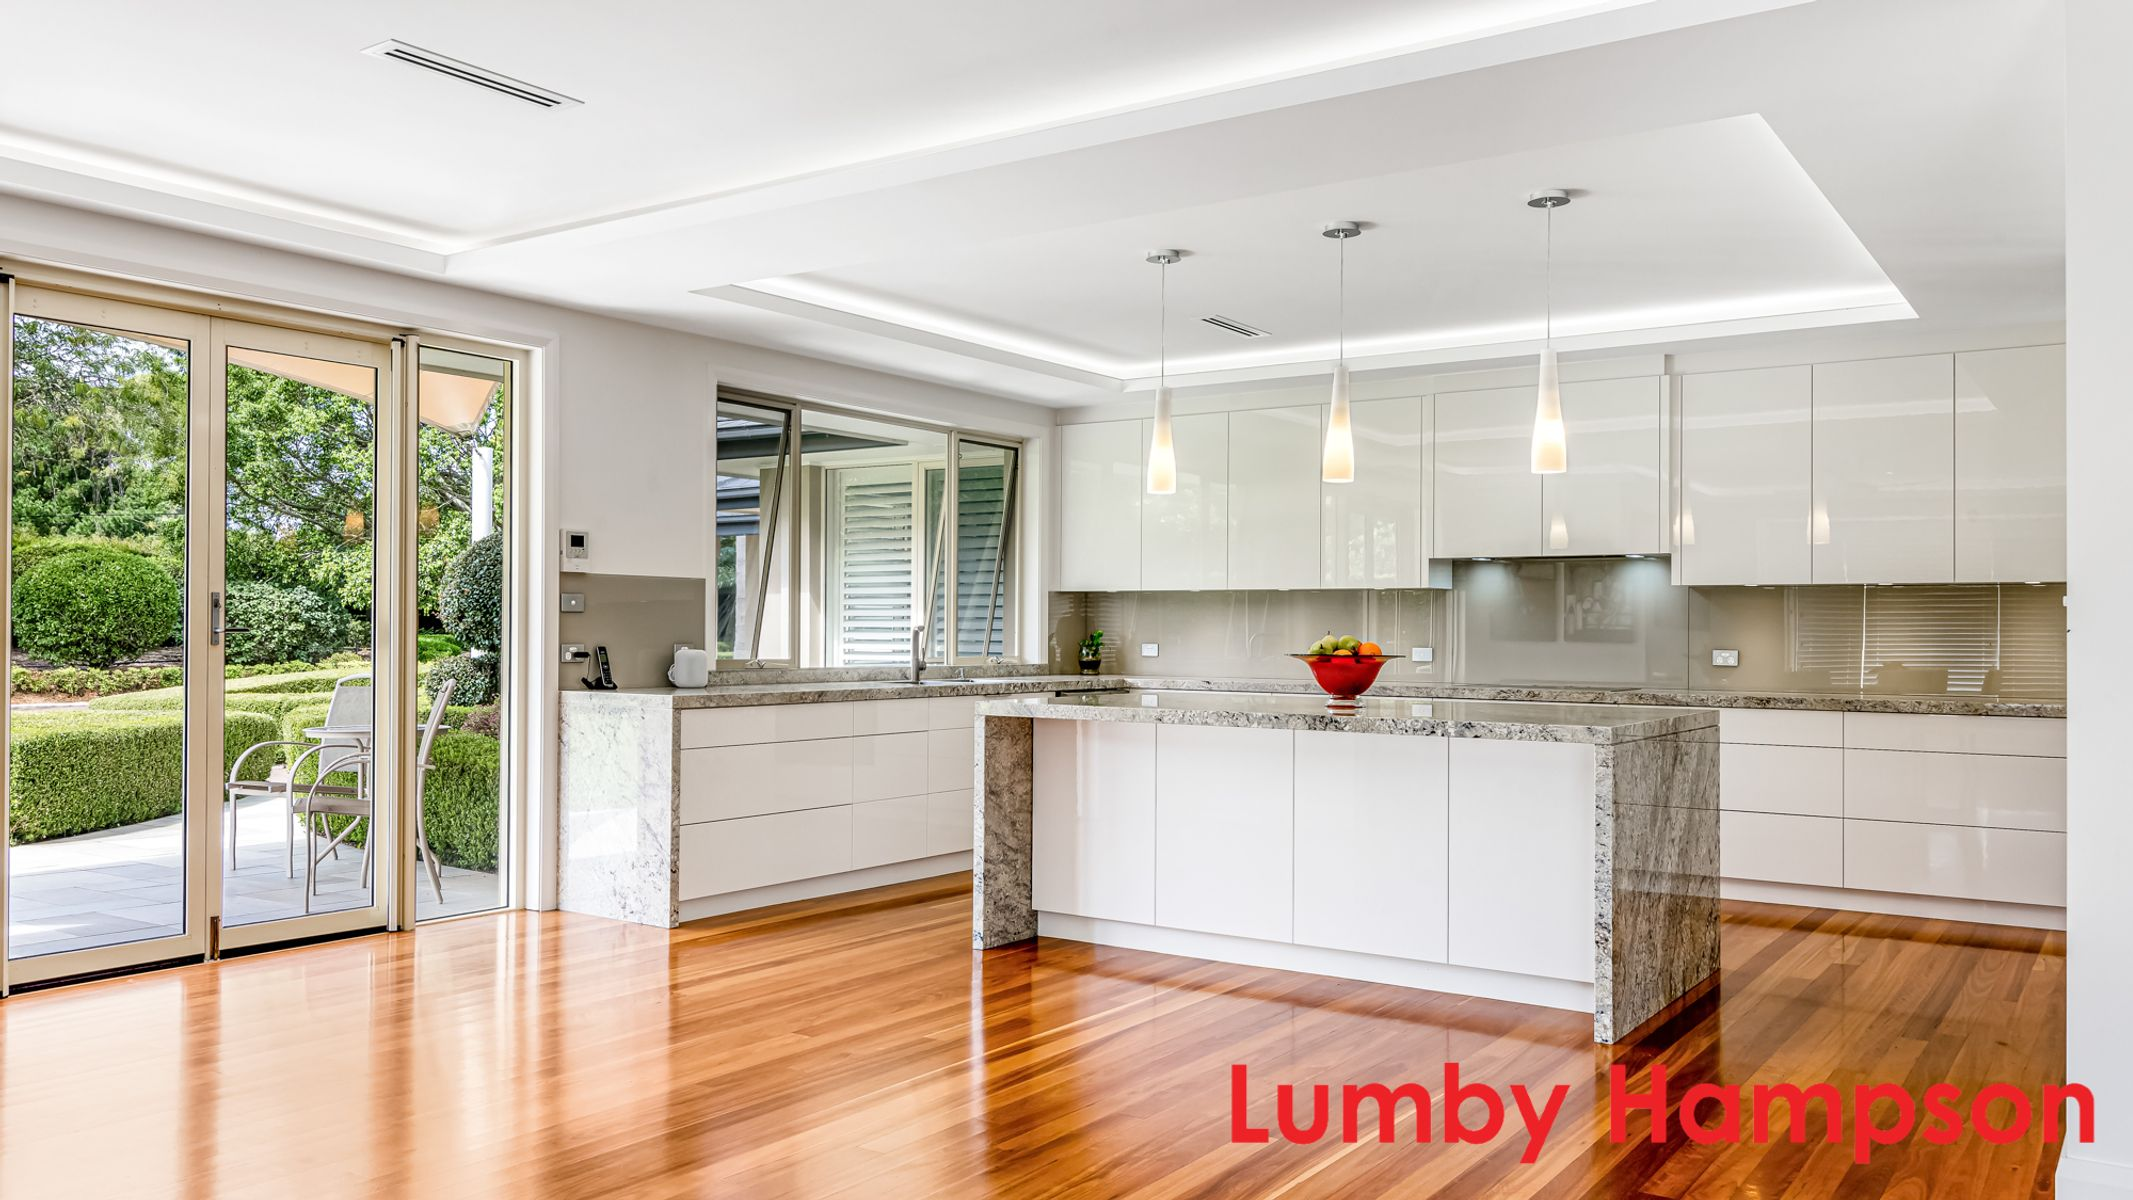 Lumby Hampson 15 Vineys Road Dural Nsw 2158